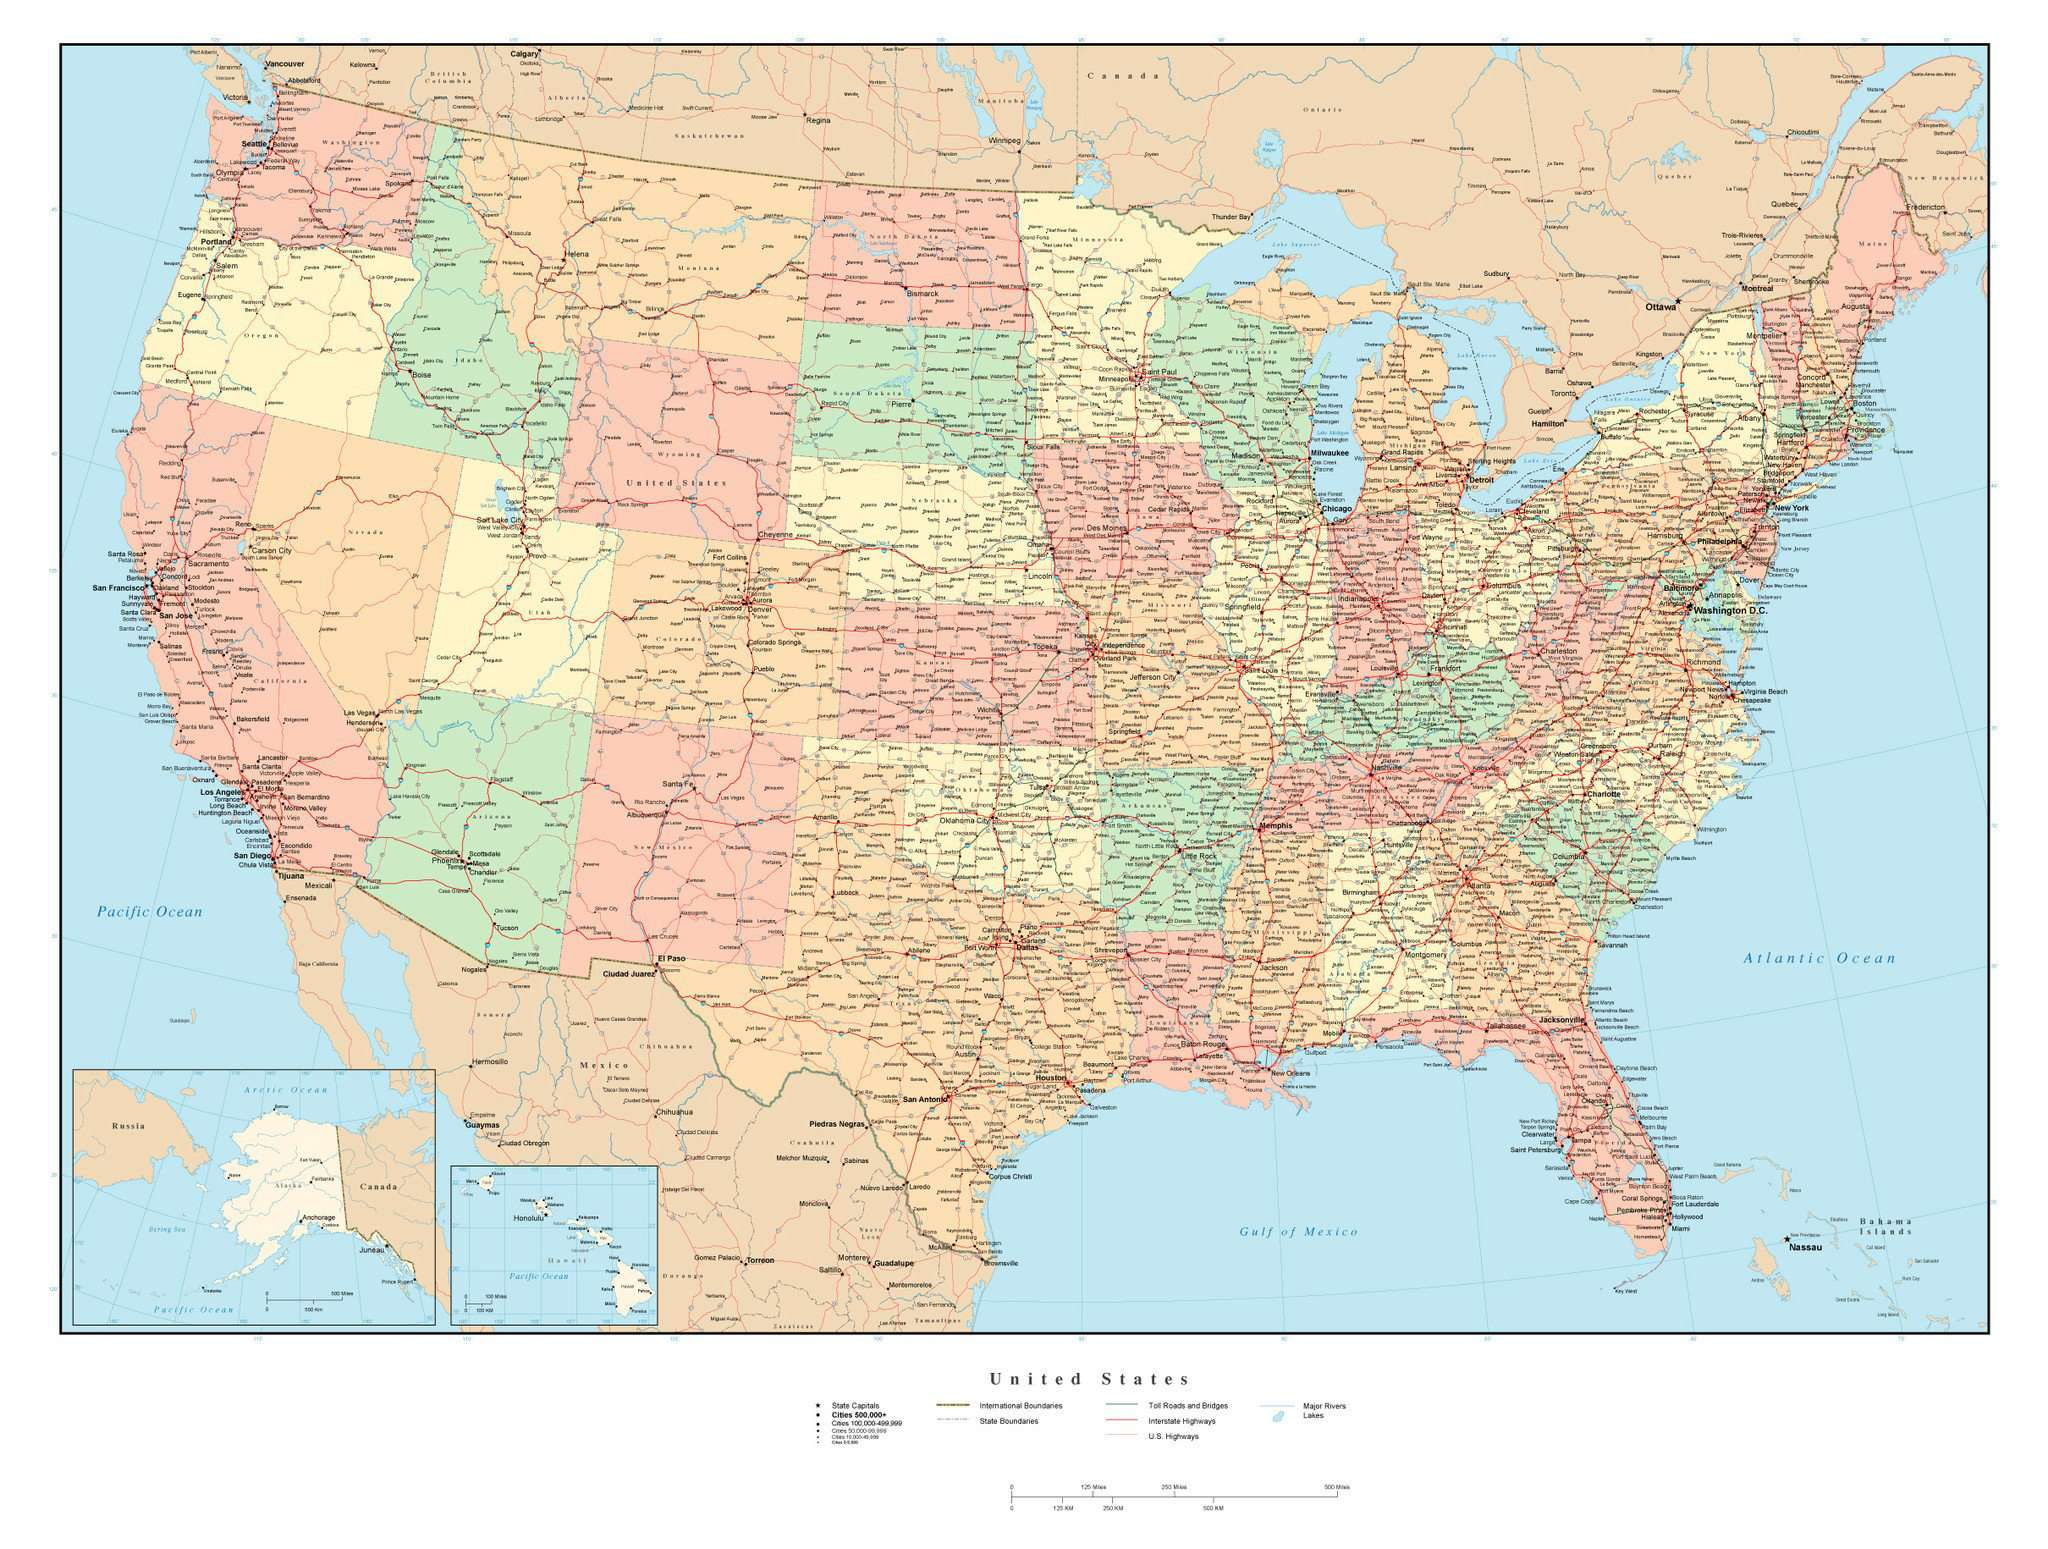 Poster Size USA Map With Cities Highways And Water Features - Usa map with roads and cities